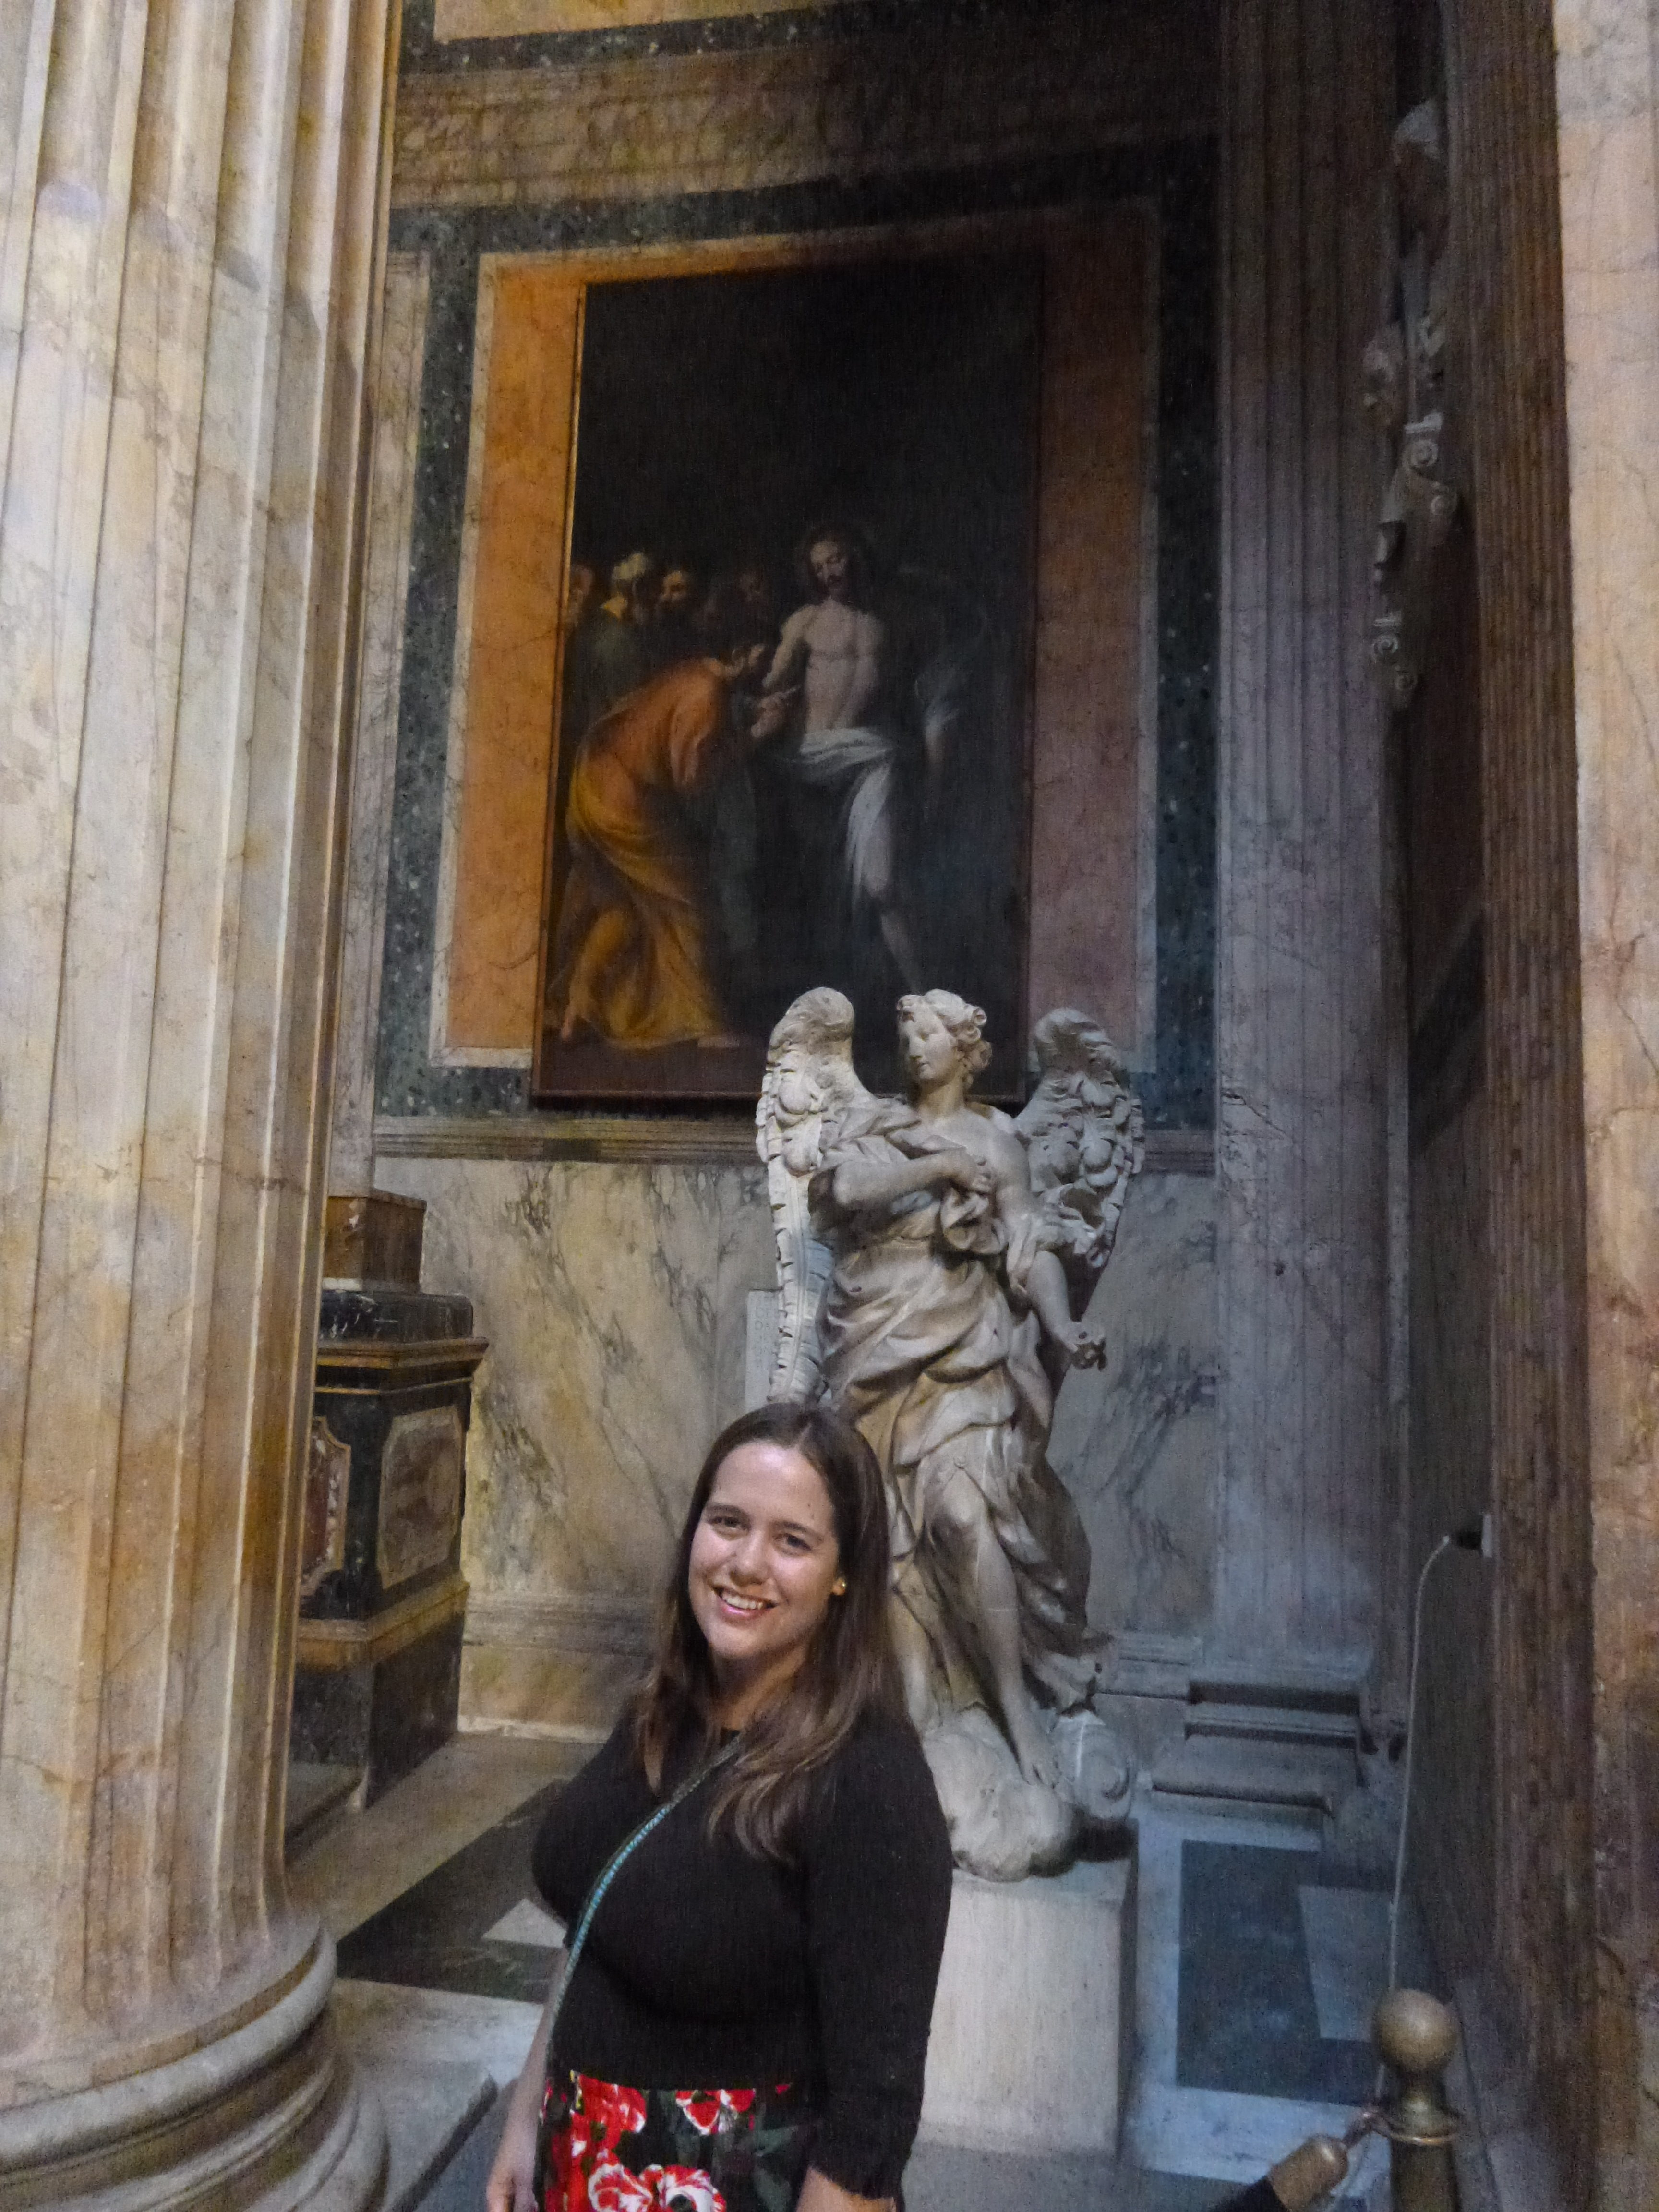 Here's the photograph that my husband took of me near the Doubting Thomas painting! Doubting Thomas, by Pietro Paolo Bonzi, c. 17th century. The Pantheon, Rome, Italy. Via IllustratedPrayer.com